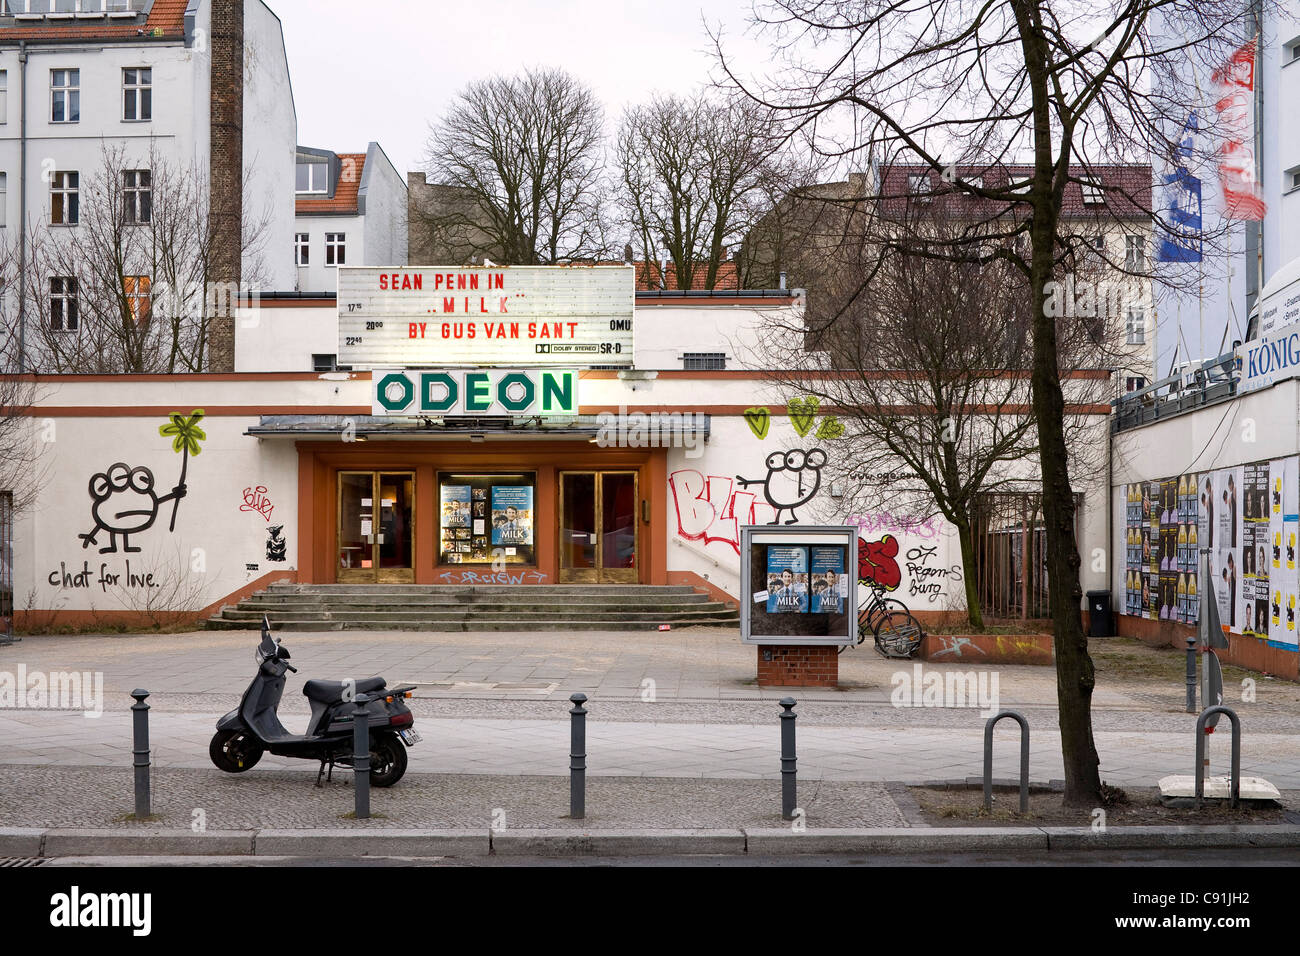 Odeon Cinema shows films in the English language, Berlin-Schoeneberg, Berlin, Germany, Europe - Stock Image